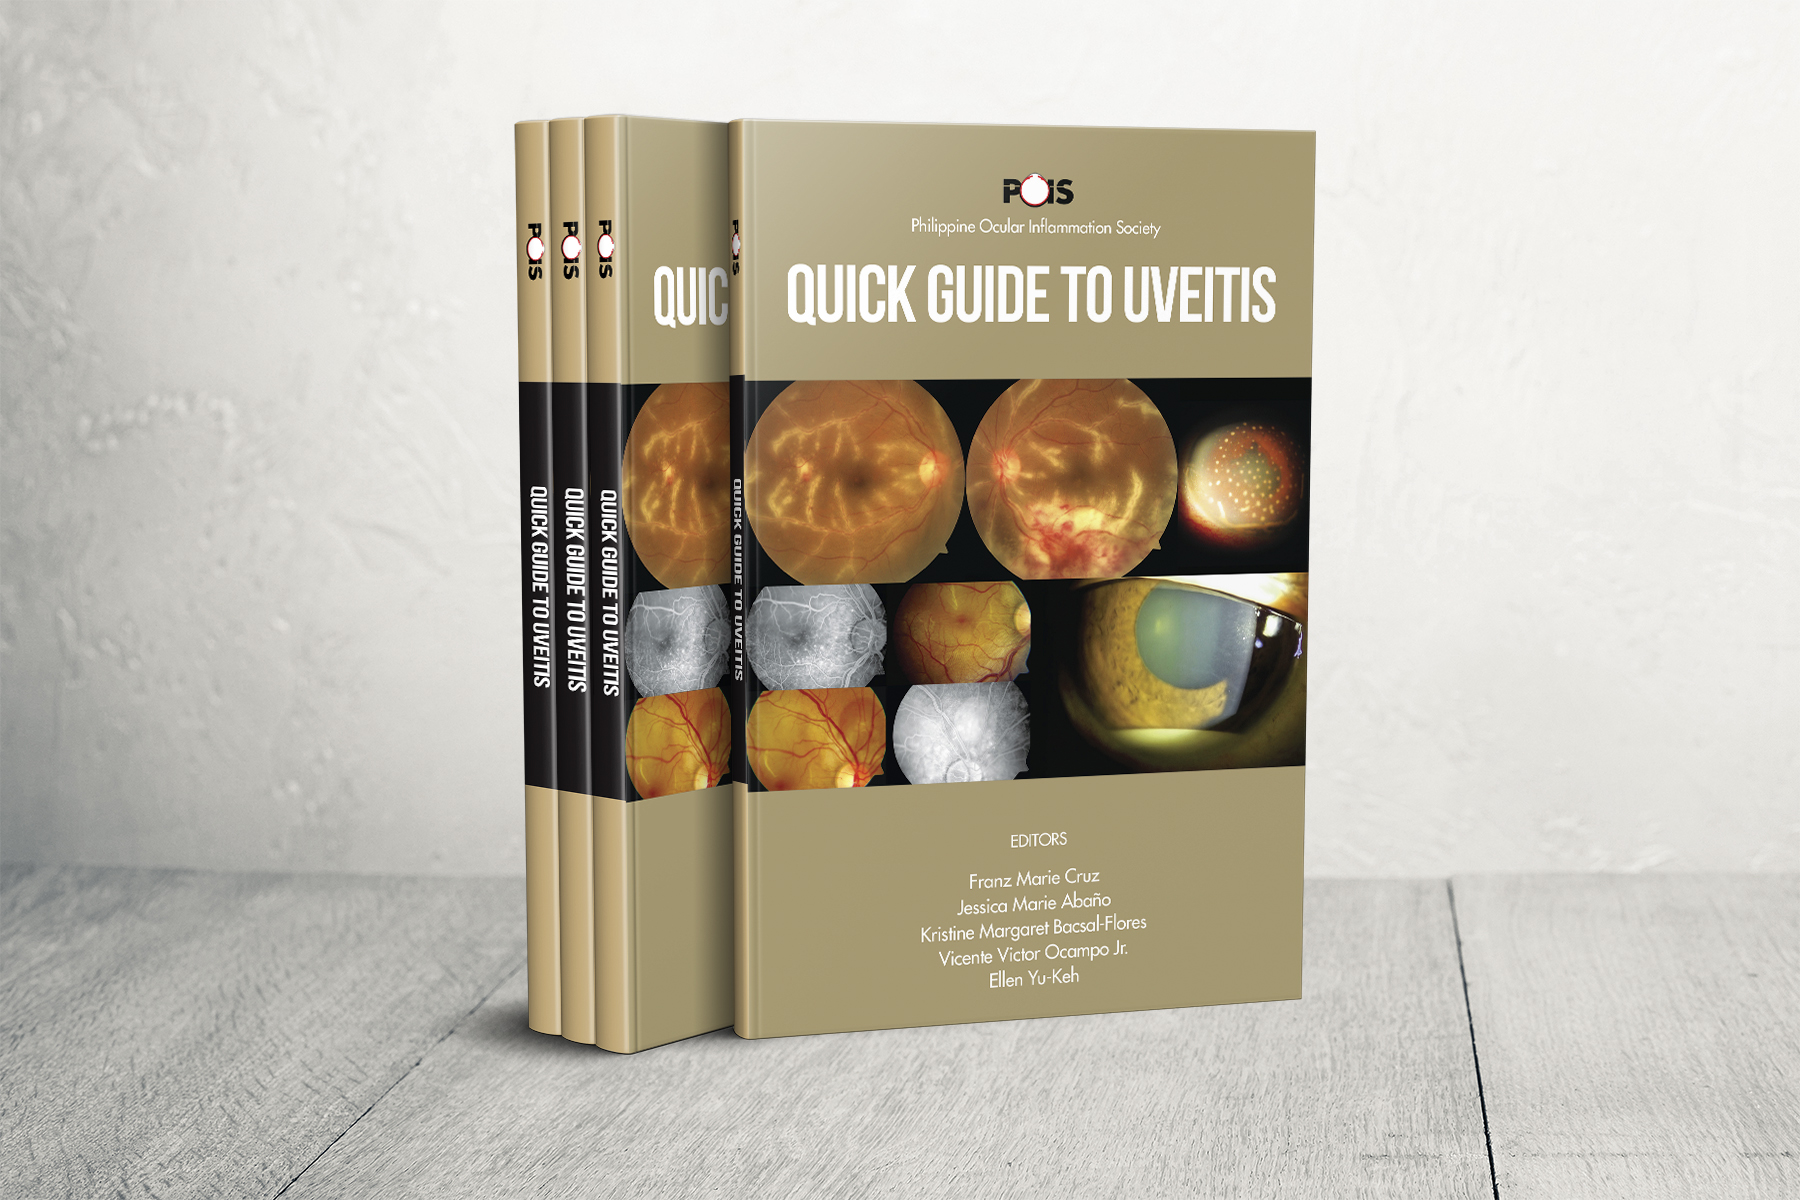 POIS Quick Guide to Uveitis Handbook